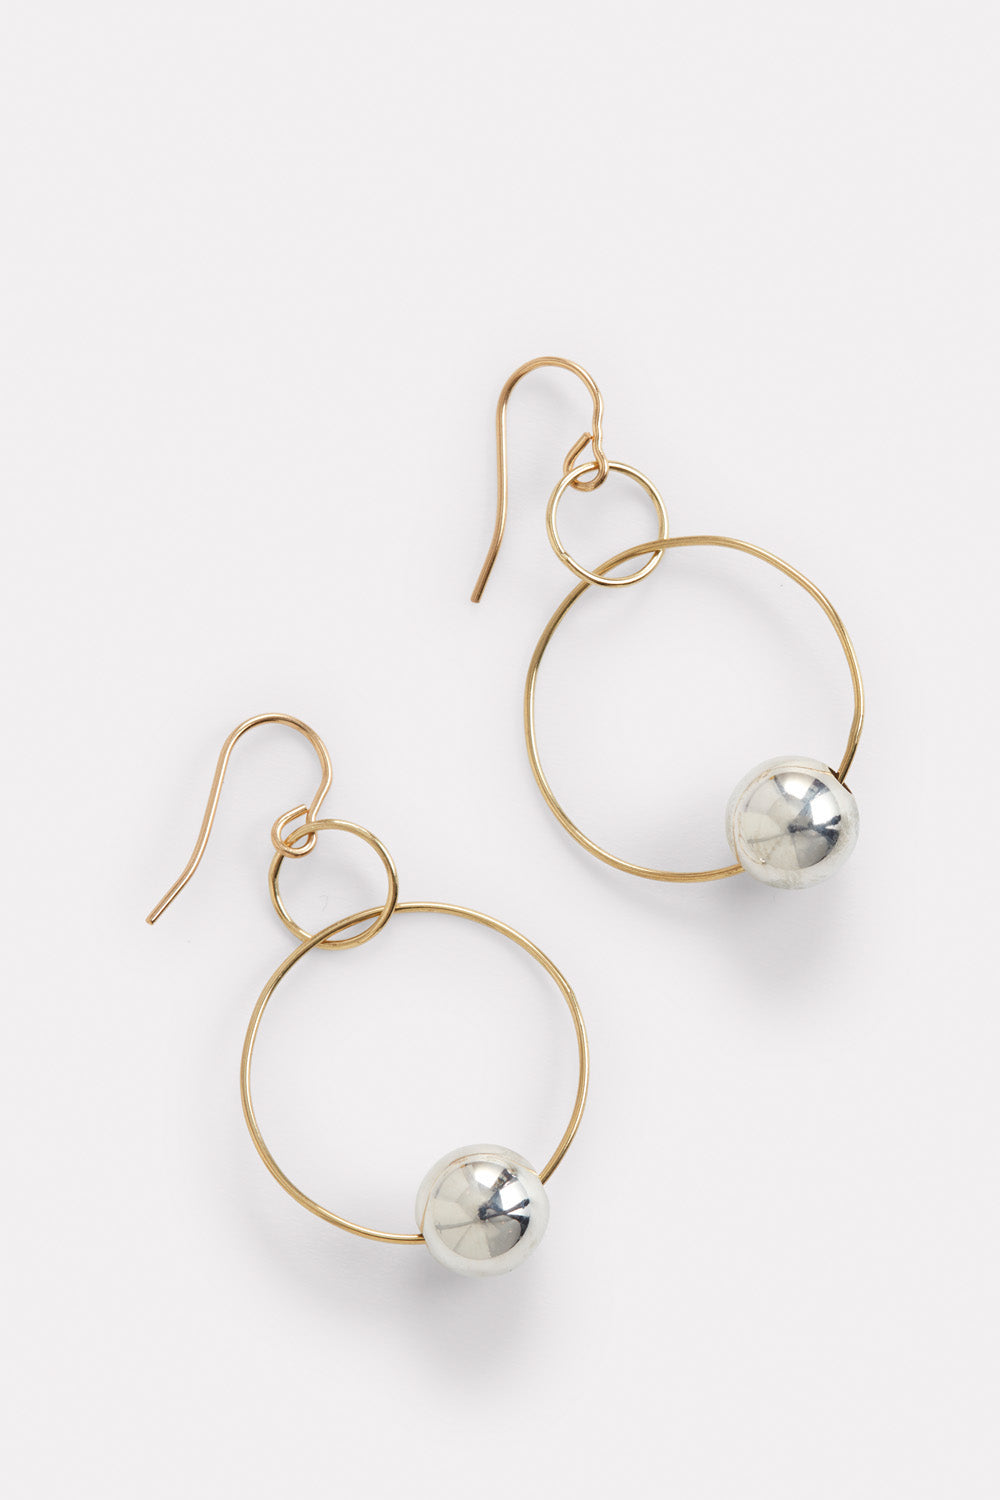 PermanentCollection - Blunk Double Hoop Gold:Silver 1